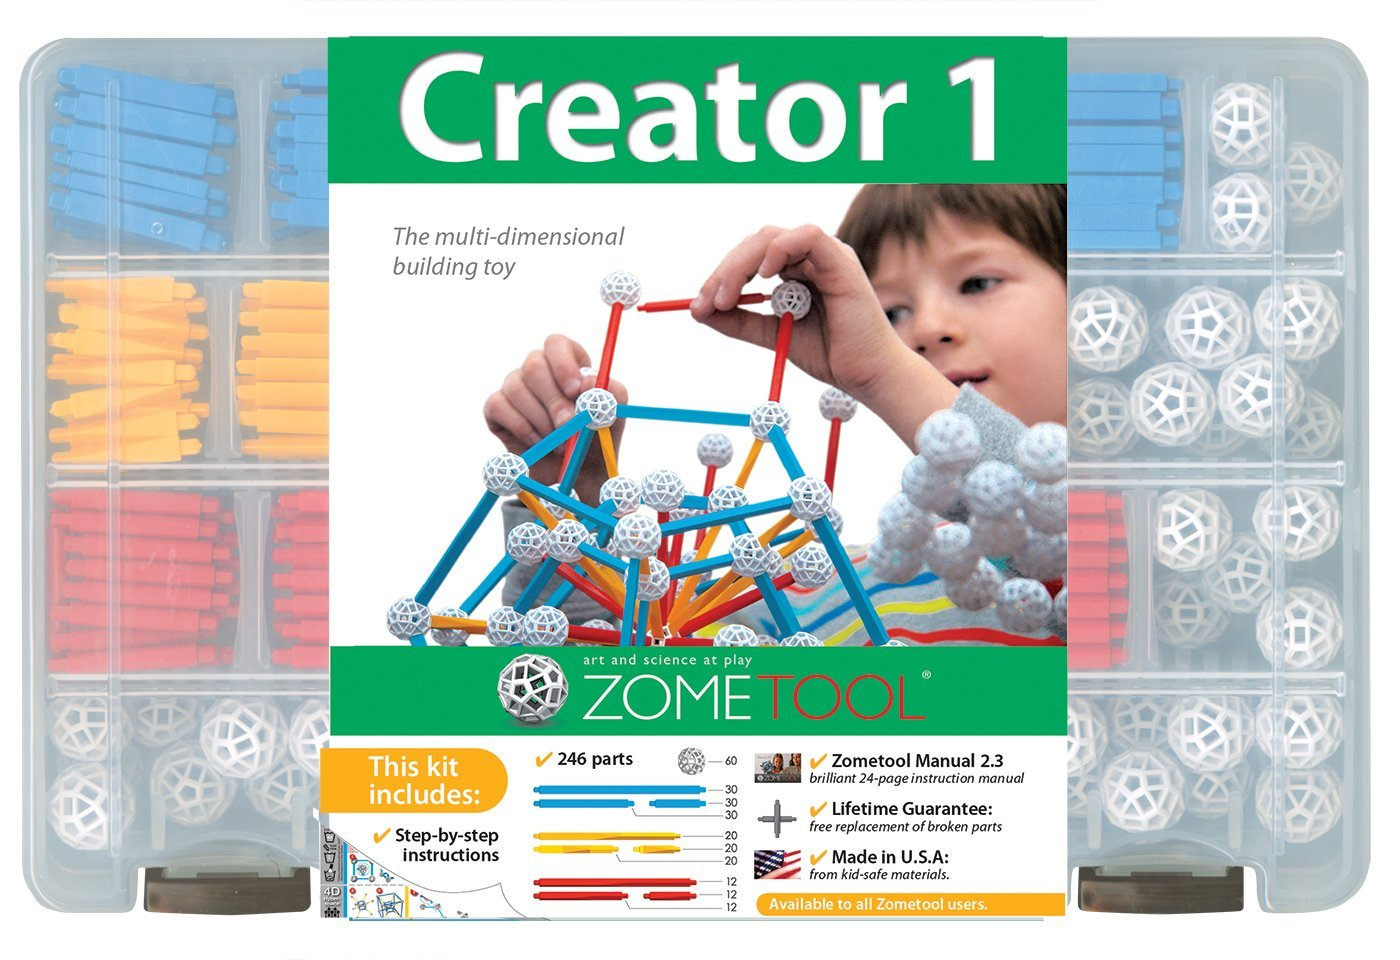 Zometool Creator 1 Construction Kit